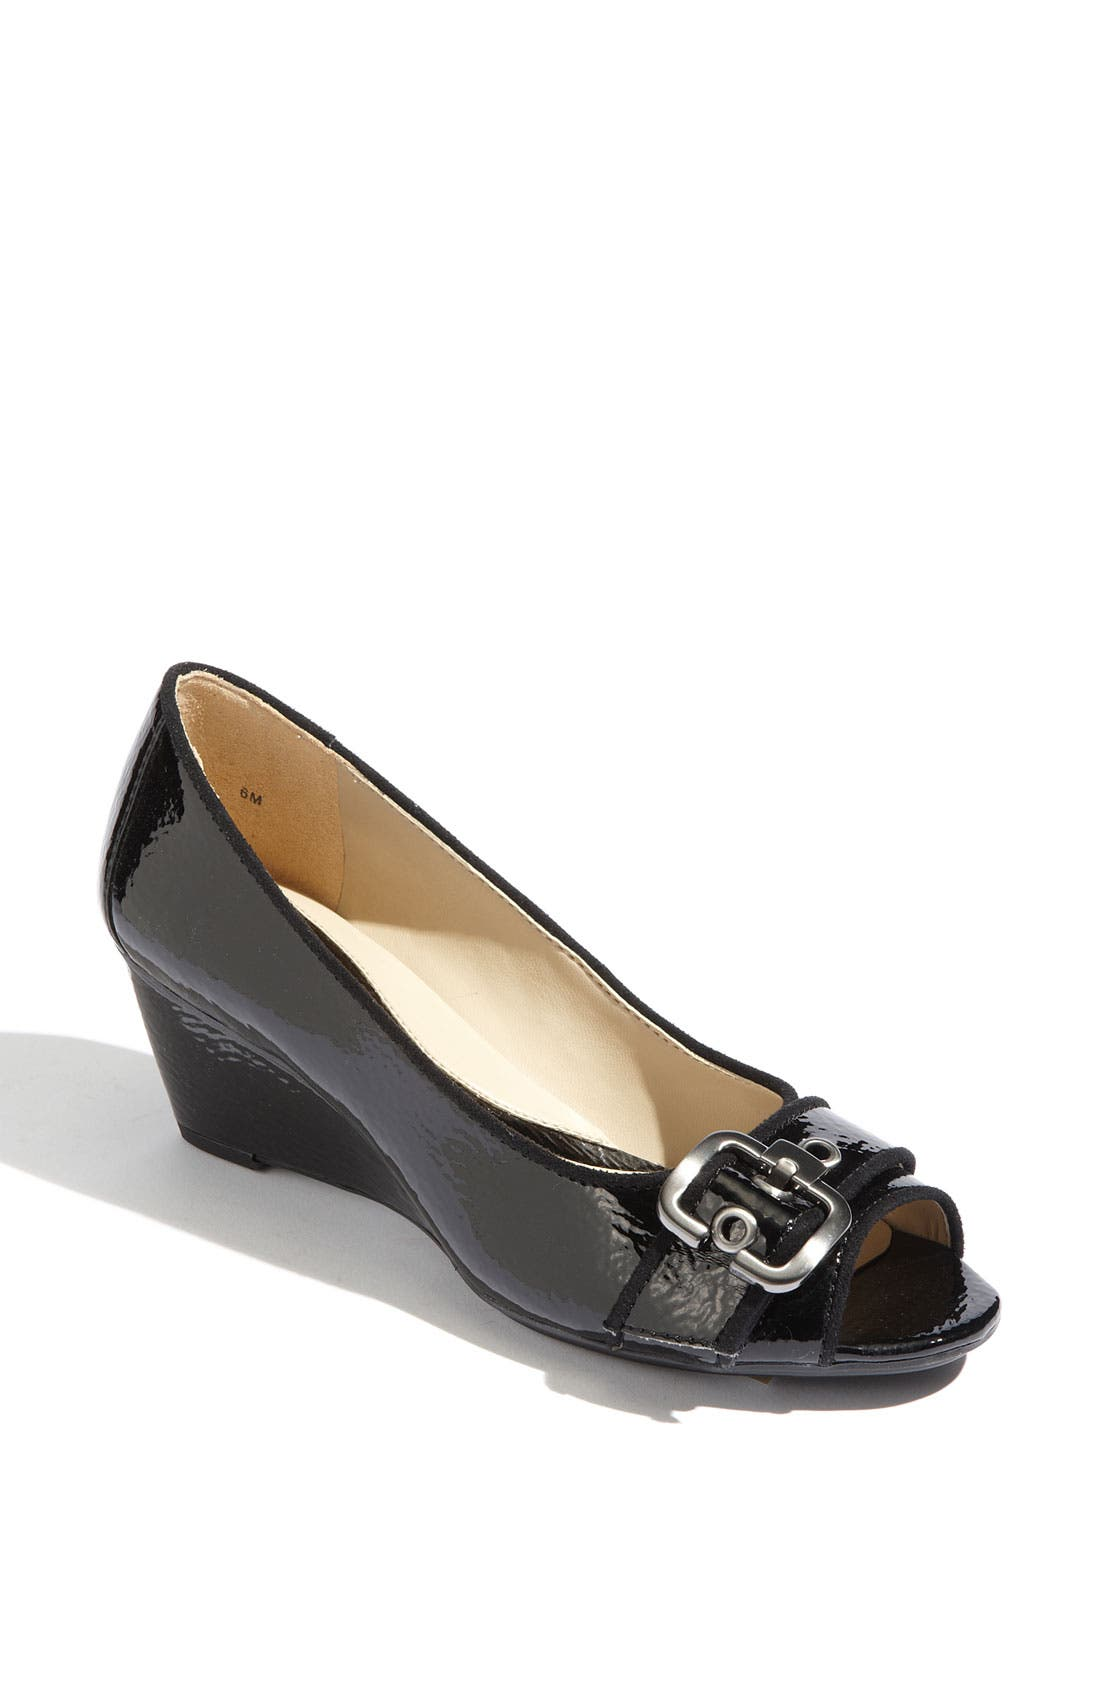 Main Image - Naturalizer 'Hidi' Pump